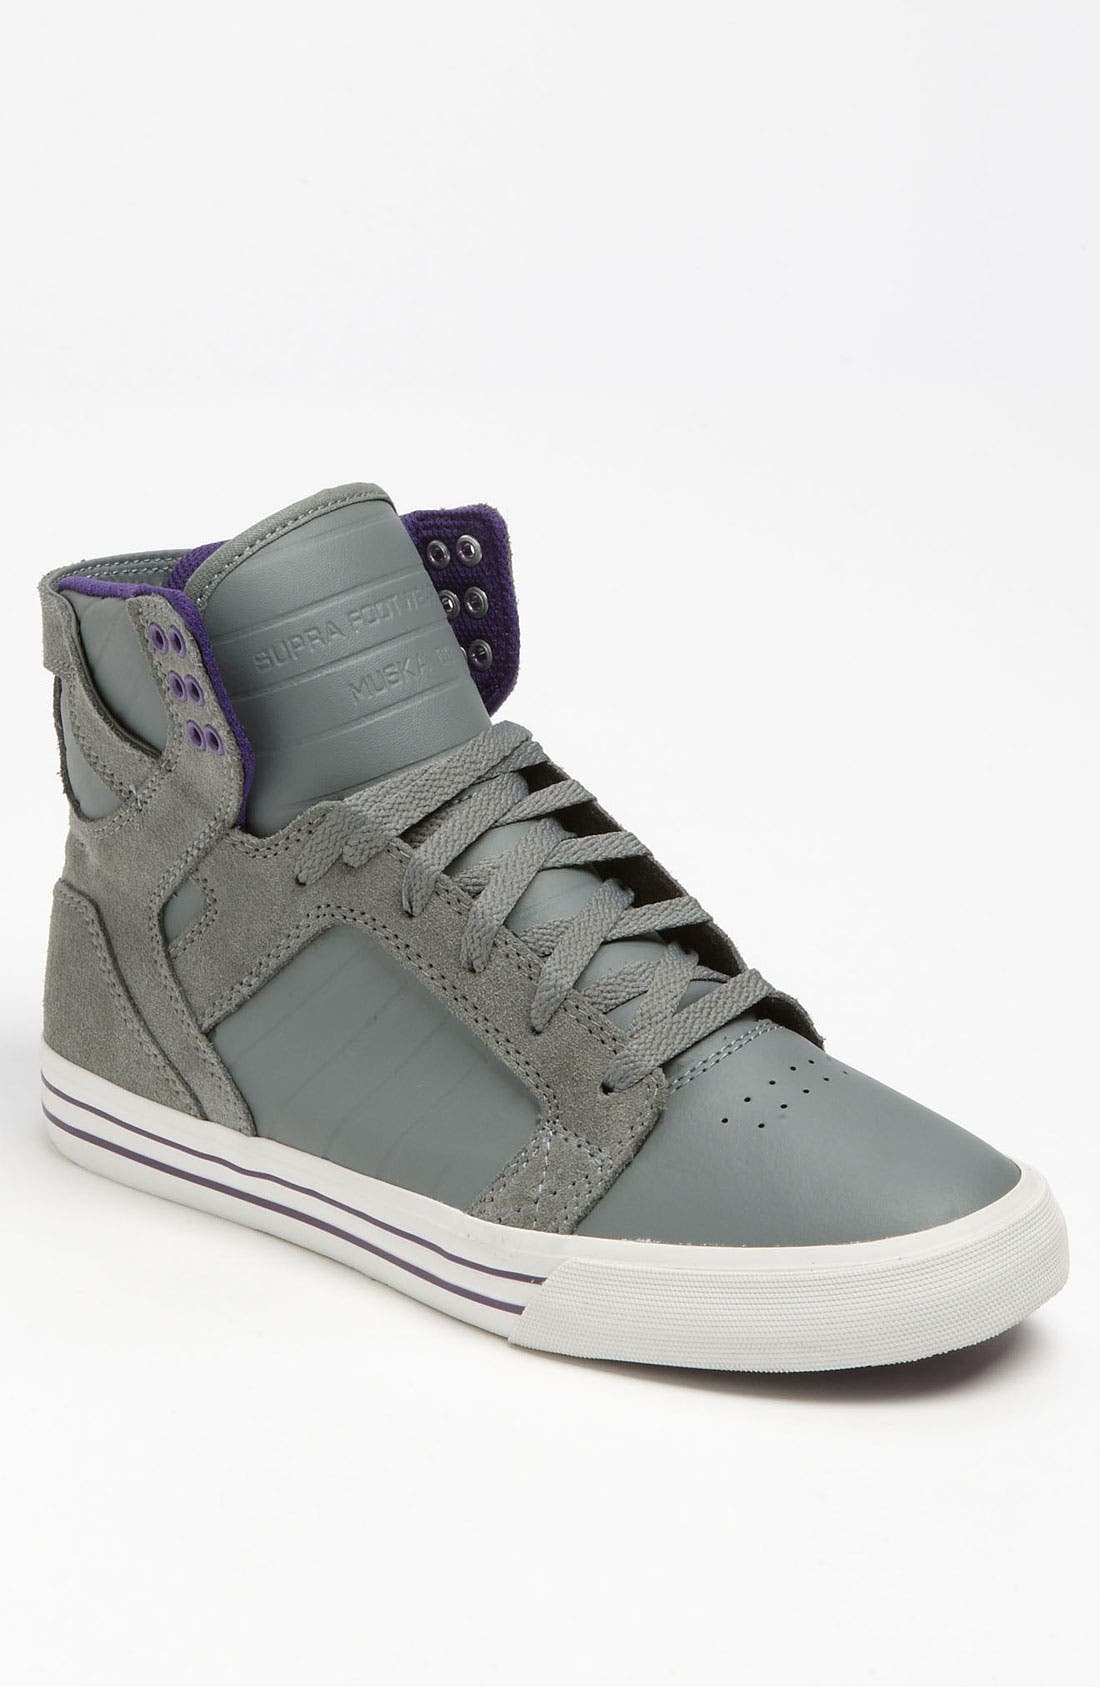 Alternate Image 1 Selected - Supra 'Skytop' Sneaker (Men)